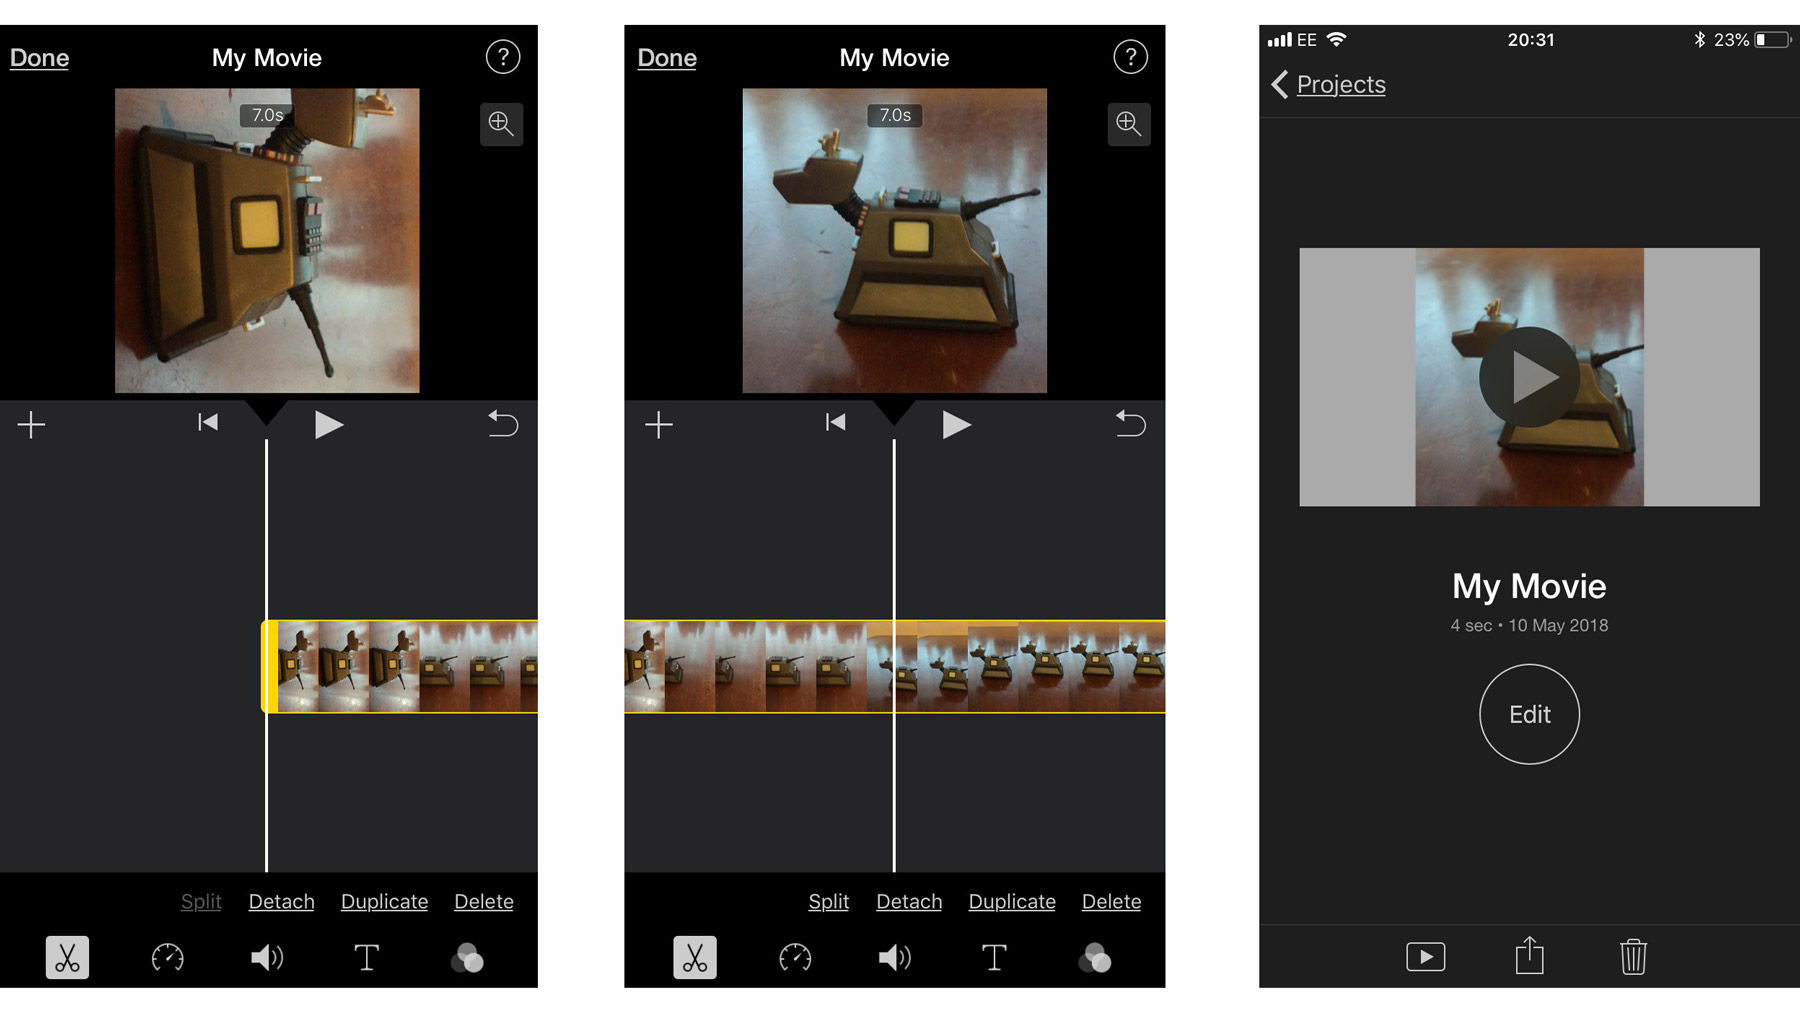 How to rotate video on iPhone: Edit